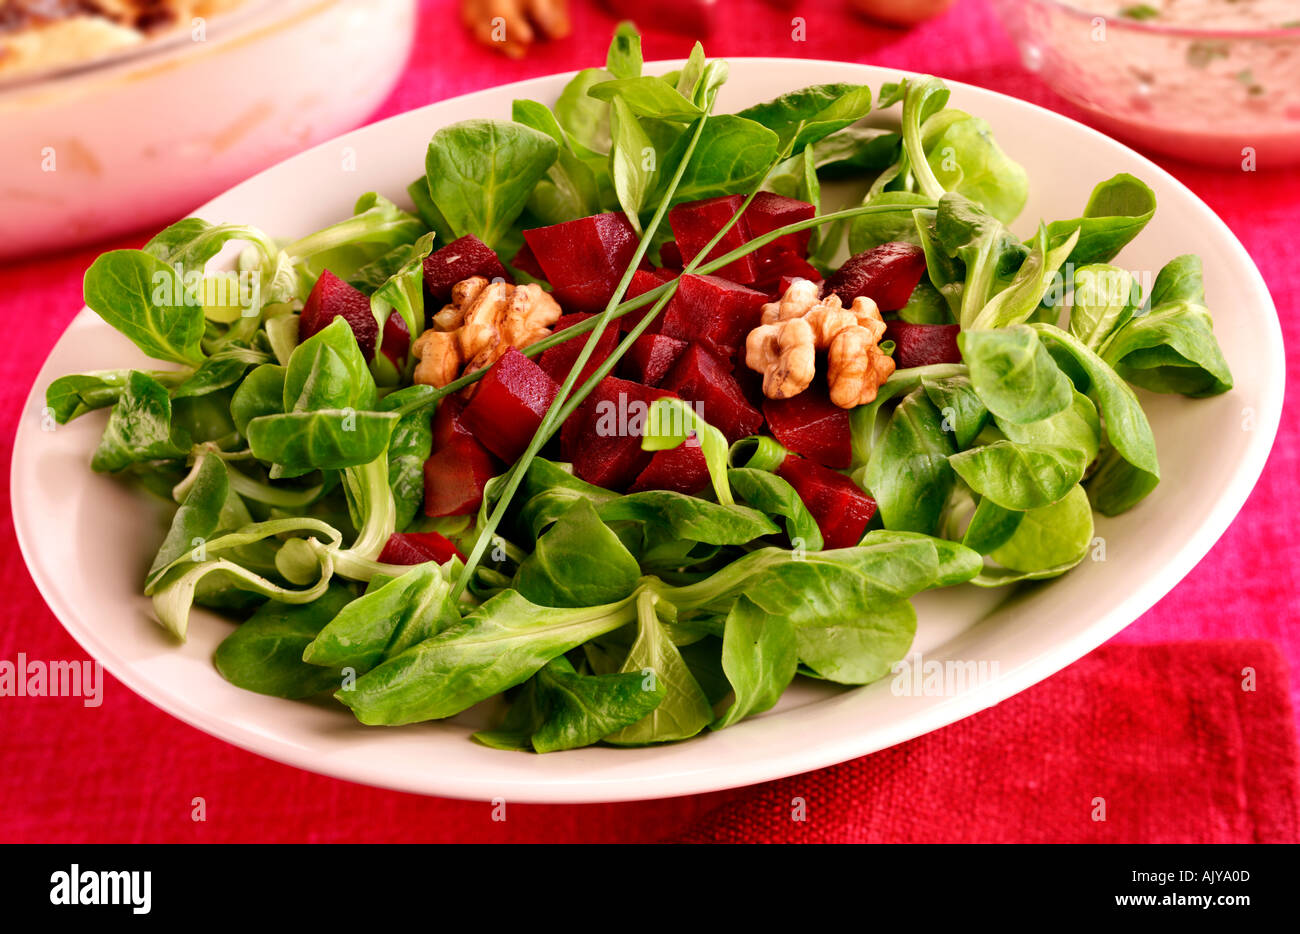 Lambs Lettuce And Beetroot Salad Stock Photo, Royalty Free Image ...